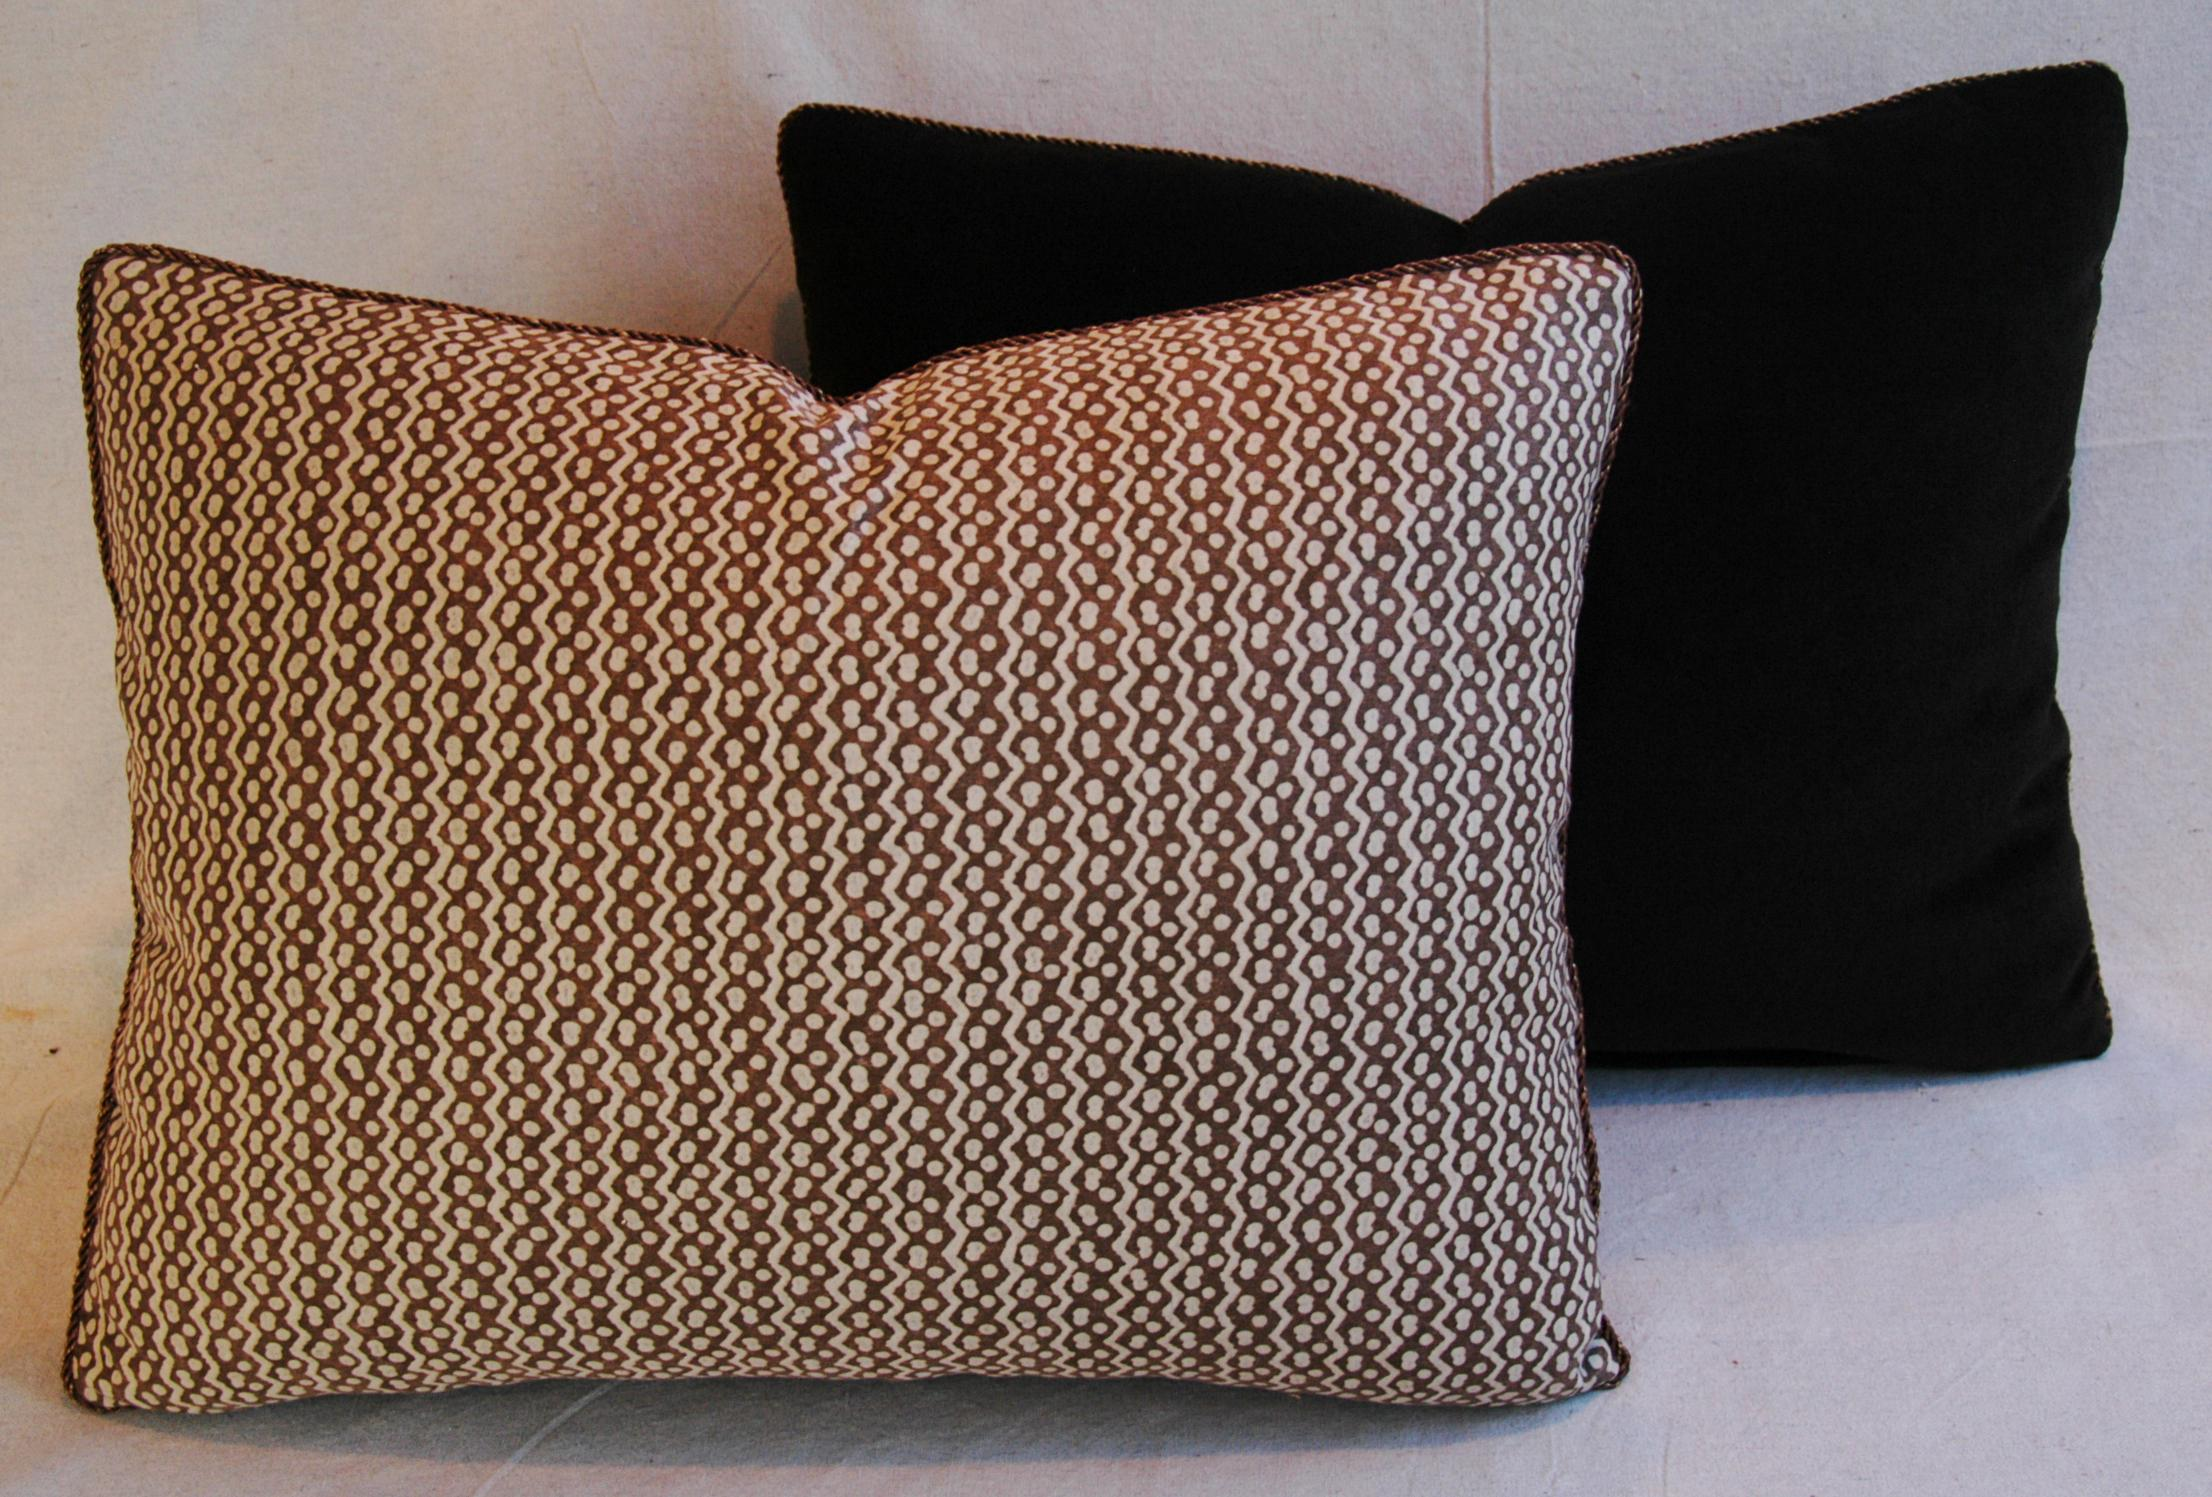 Italian Mariano Fortuny Tapa Feather & Down Pillows - a ...